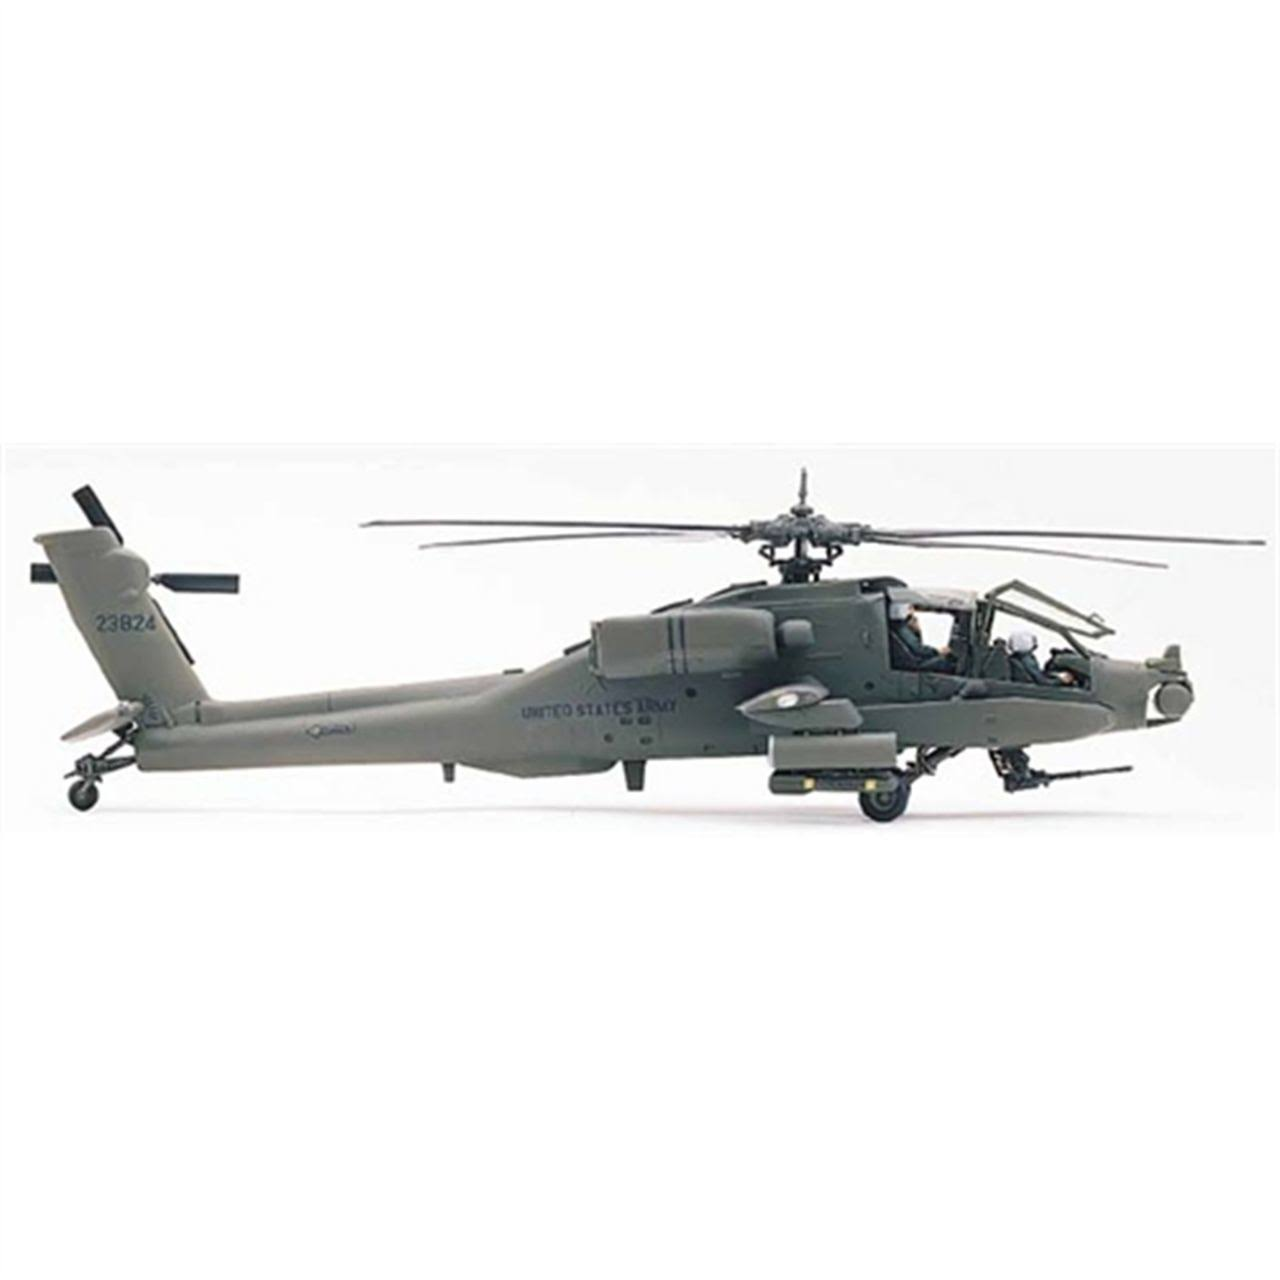 Revell Monogram AH-64 Apache Helicopter 1/48 Scale Plastic Model